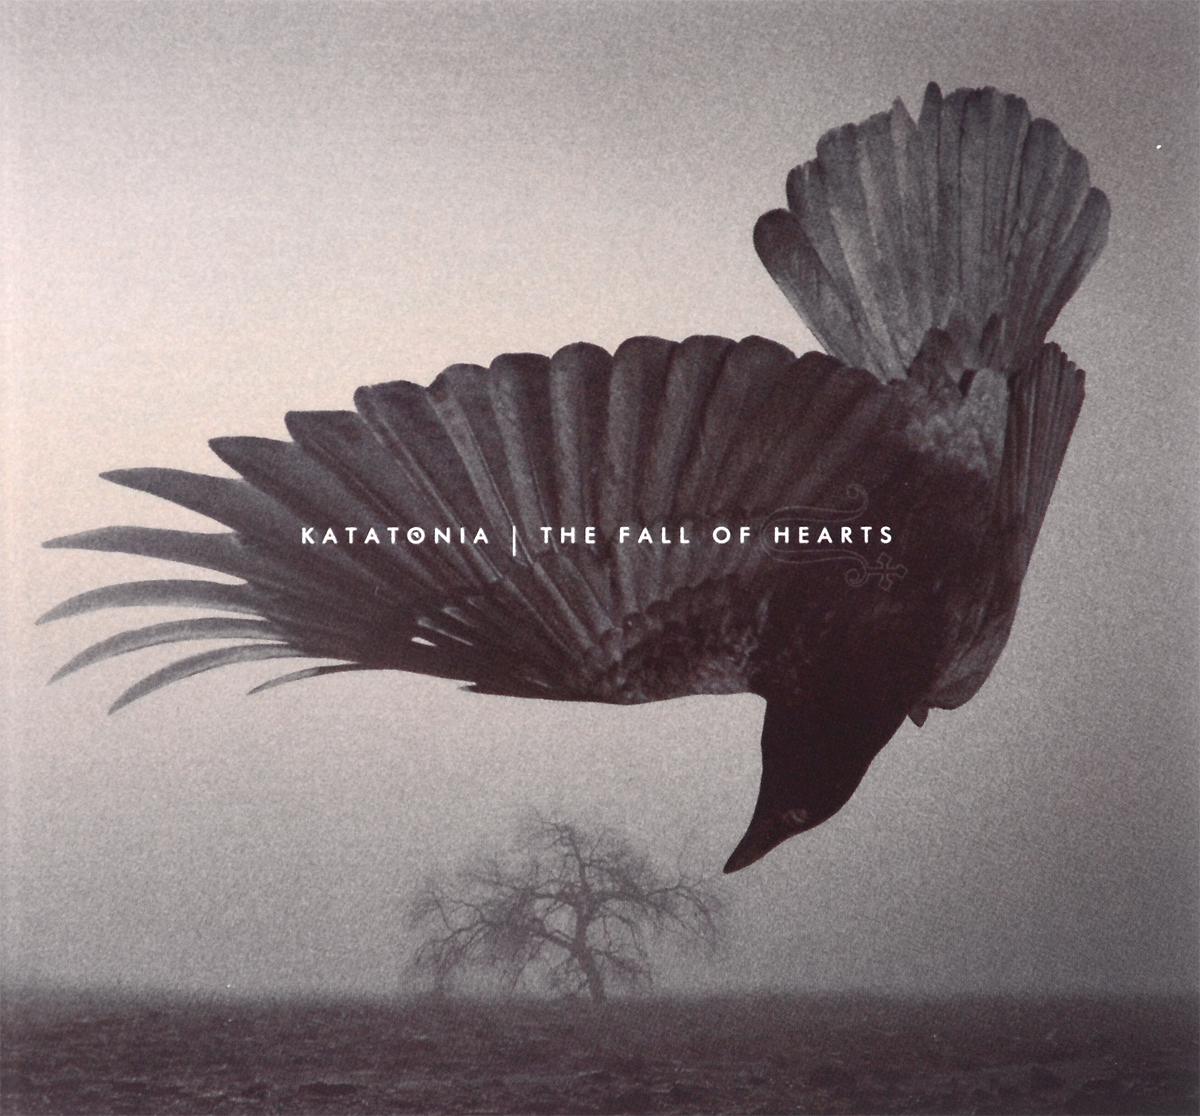 Katatonia Katatonia. The Fall Of Hearts (CD + DVD) cd диск enya the memory of trees 1 cd